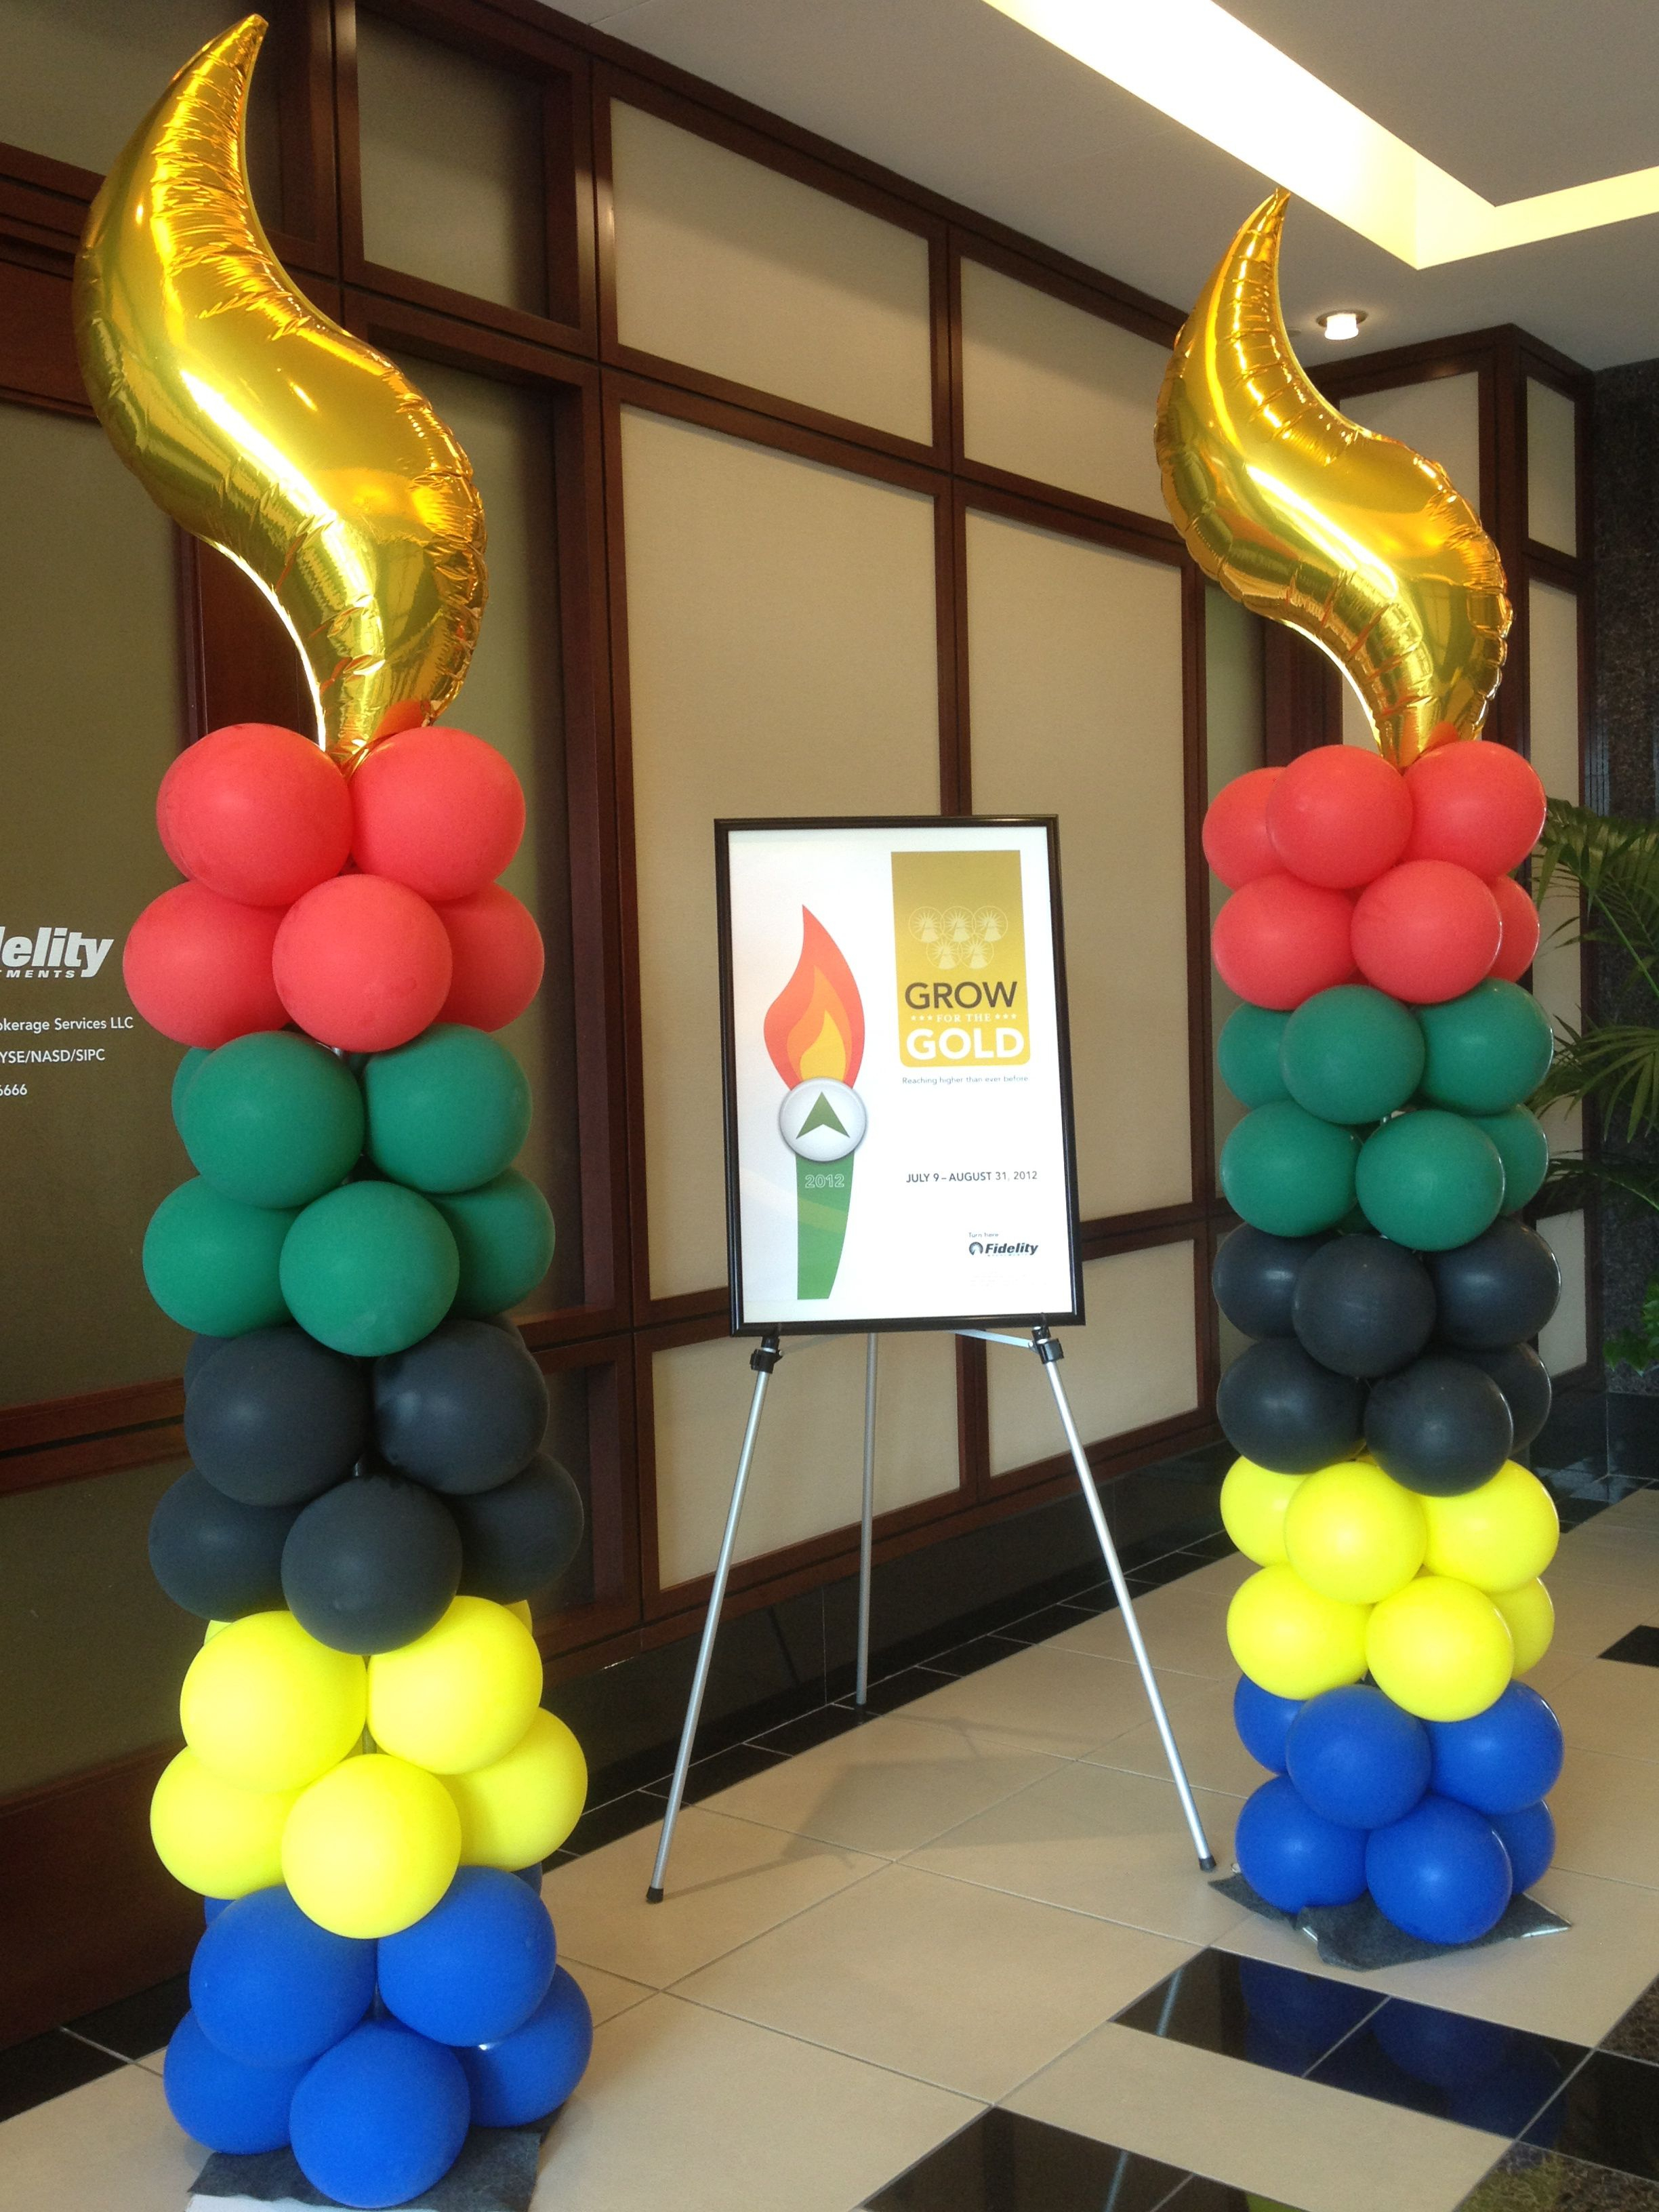 Epic Olympic Themed Balloon Columns. #olympic #balloon #column | Balloon intended for Fresh Olympic Themed Decorations